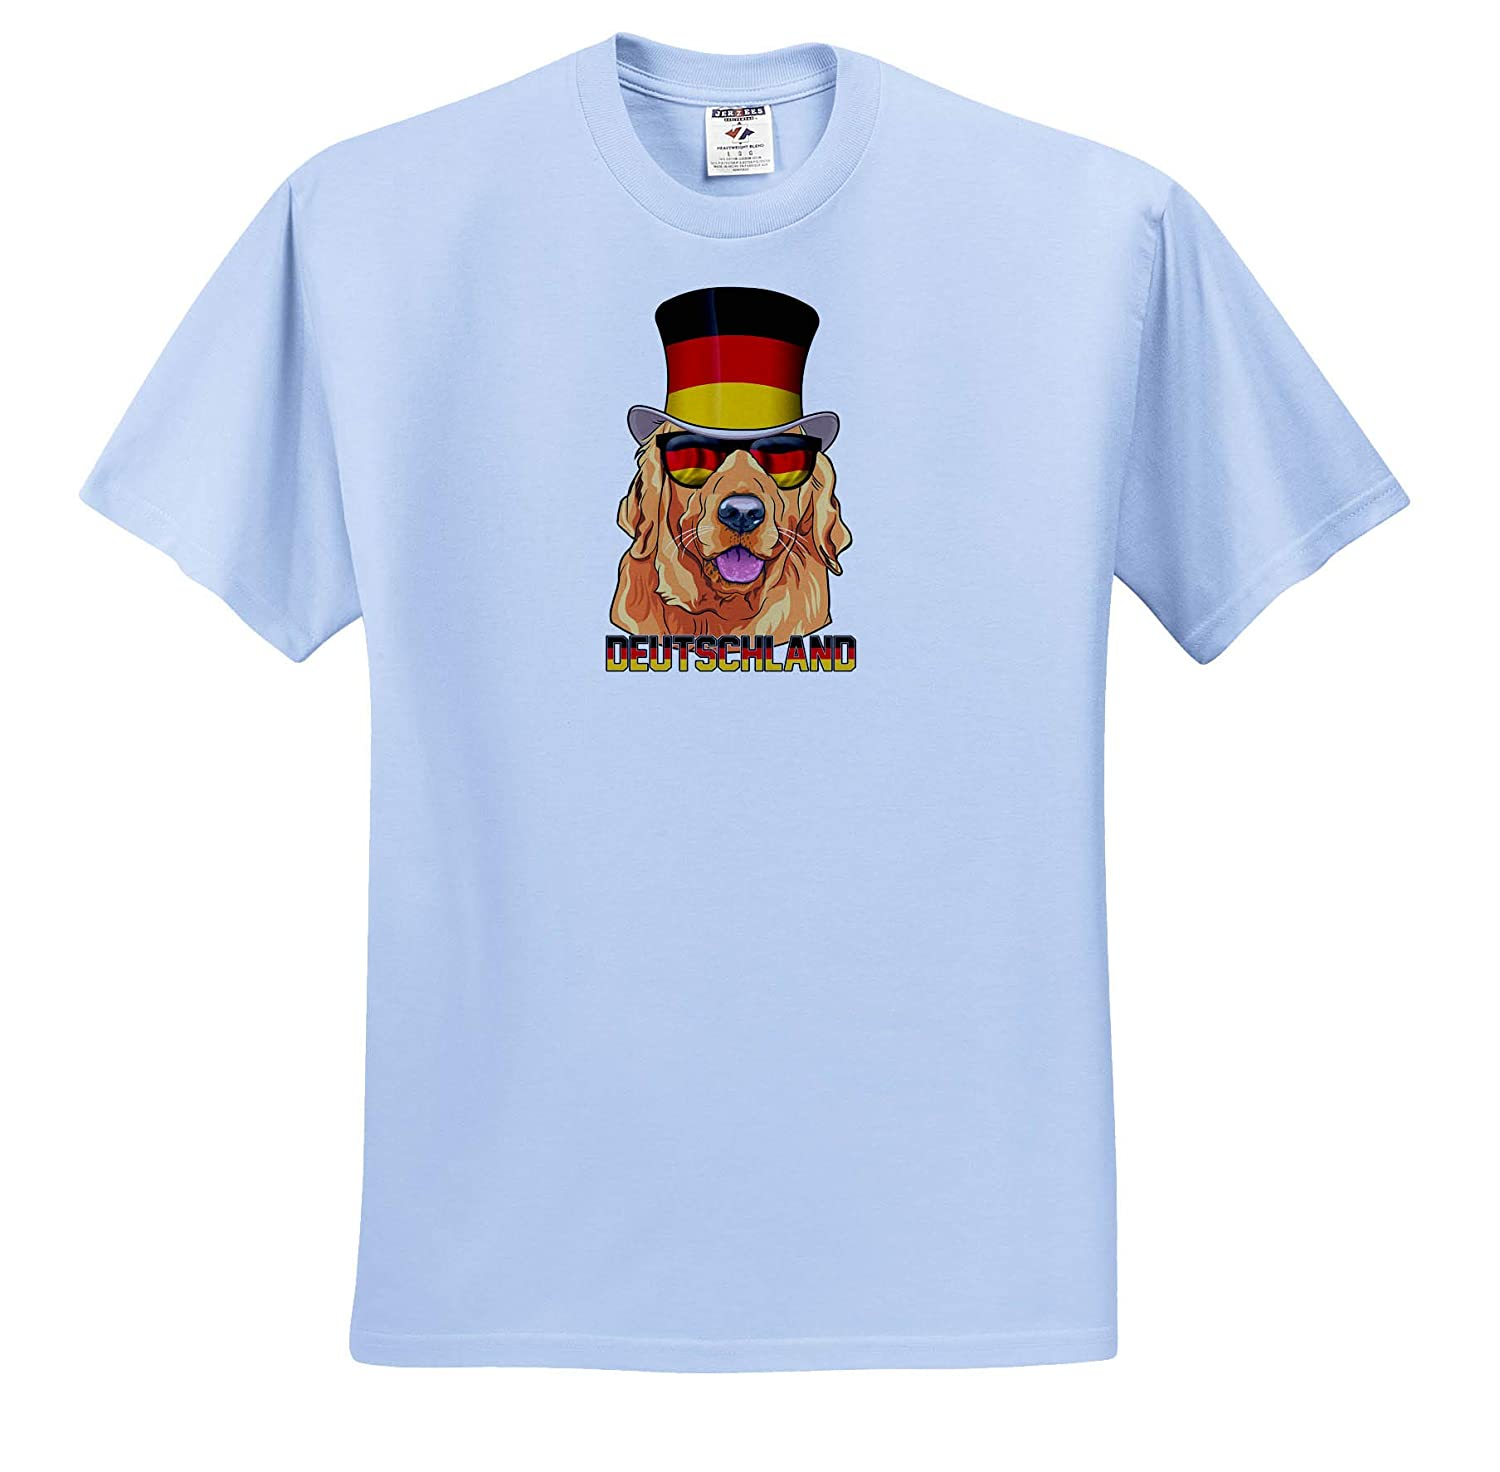 Germany Golden Retriever Dog with German Flag Top Hat and Sunglasses Illustrations T-Shirts 3dRose Carsten Reisinger